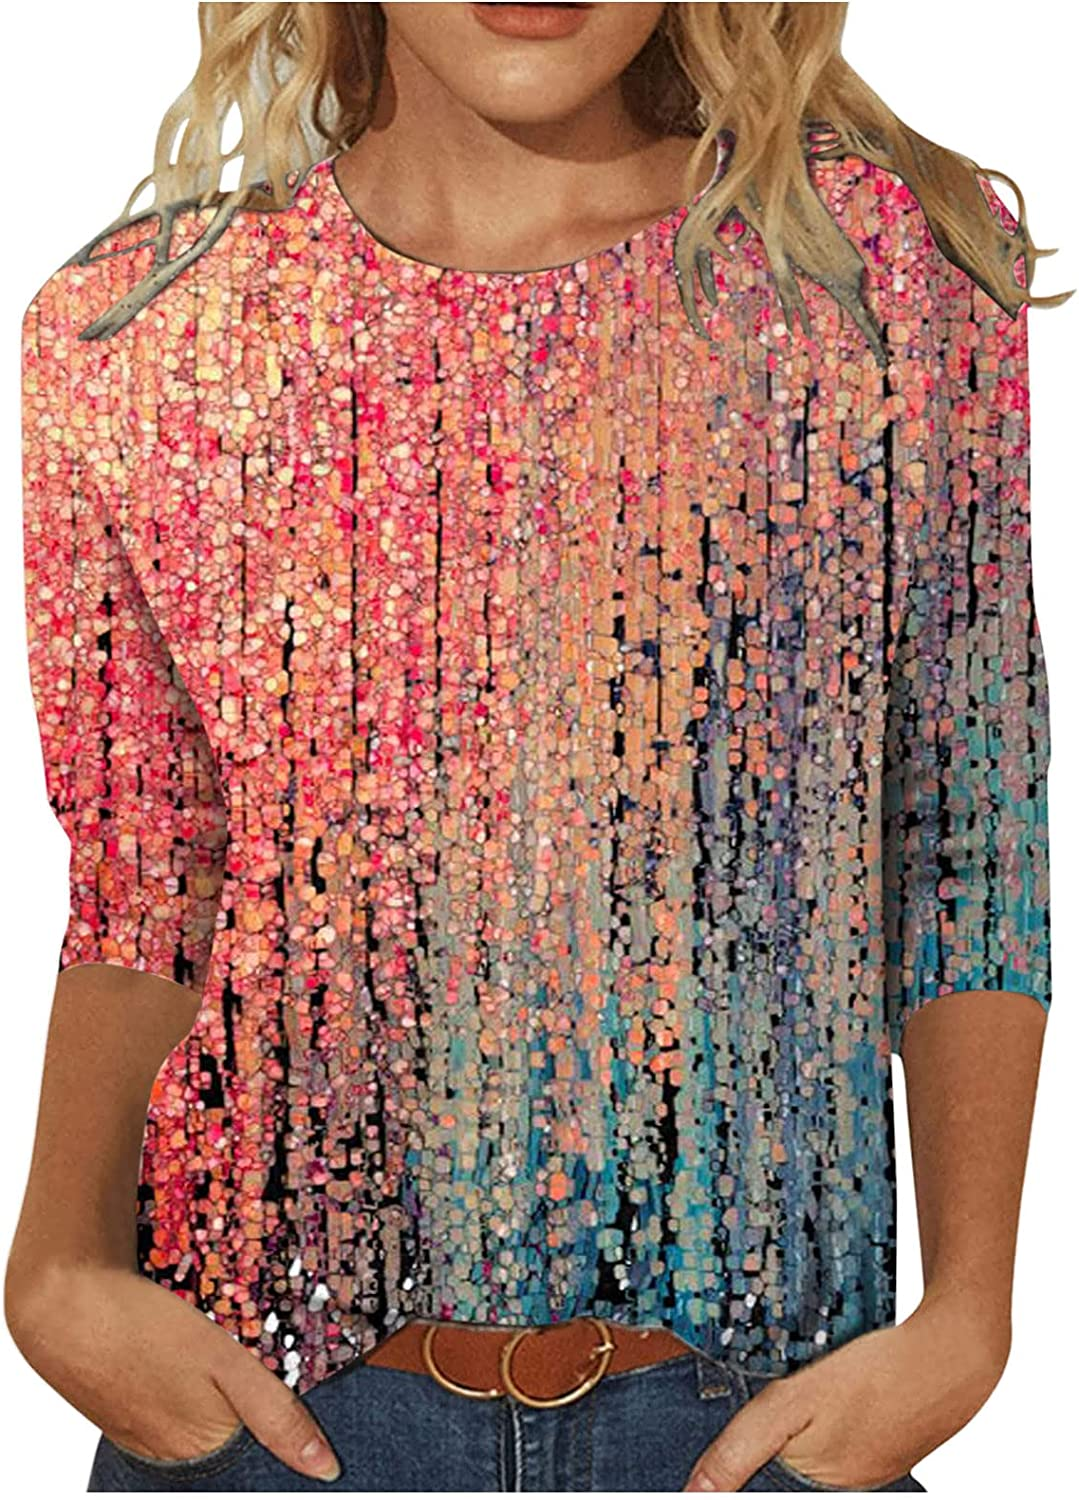 Womens 3/4 Long Sleeve Crew Neck Paisley Floral Print Tunic Blouses Casual Comfy Basic Tops Blusas de Mujer Elegantes